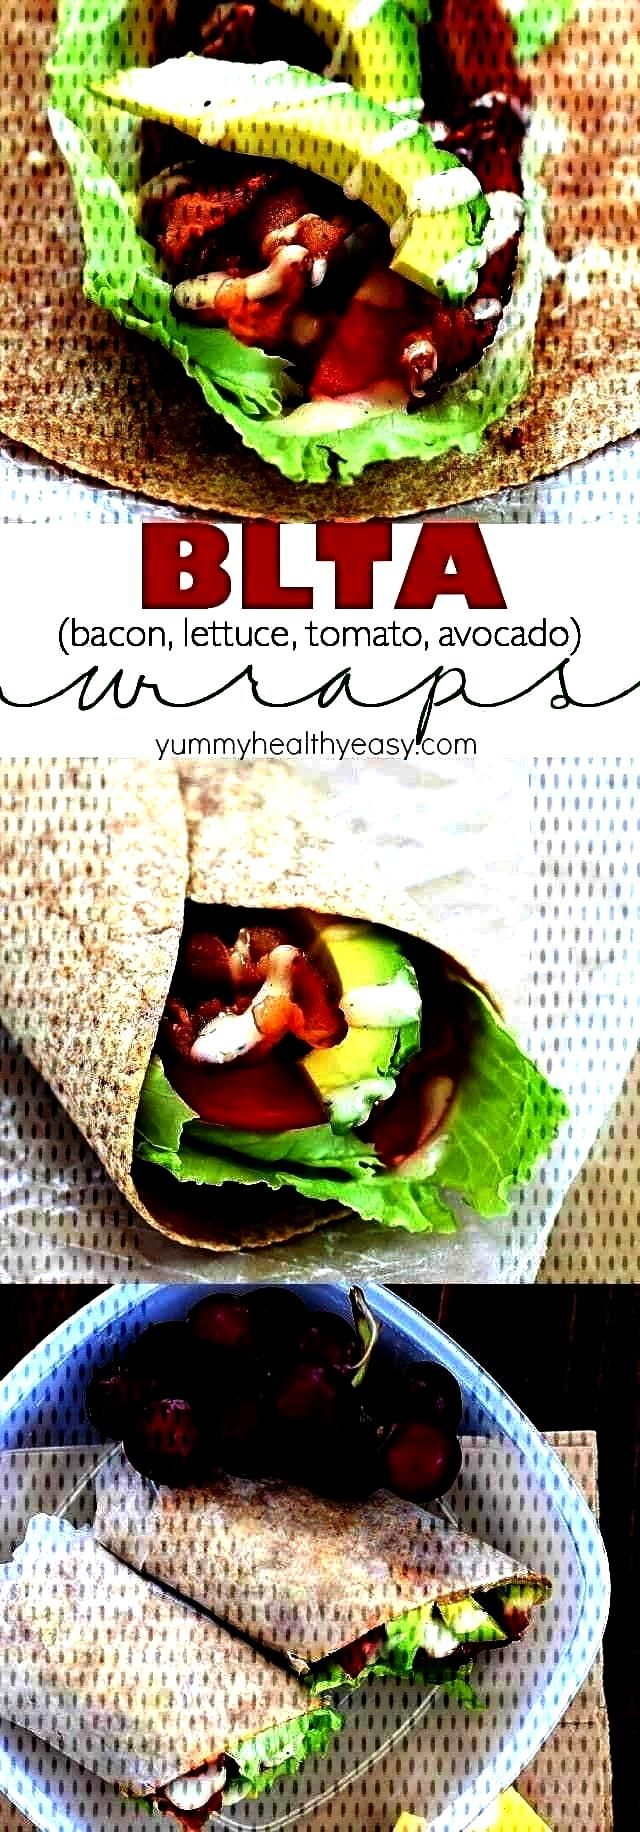 Wrap - Sick of boring lunches? You NEED to throw an easy BLTA wra... Best Ever BLTA Wrap - Sick of